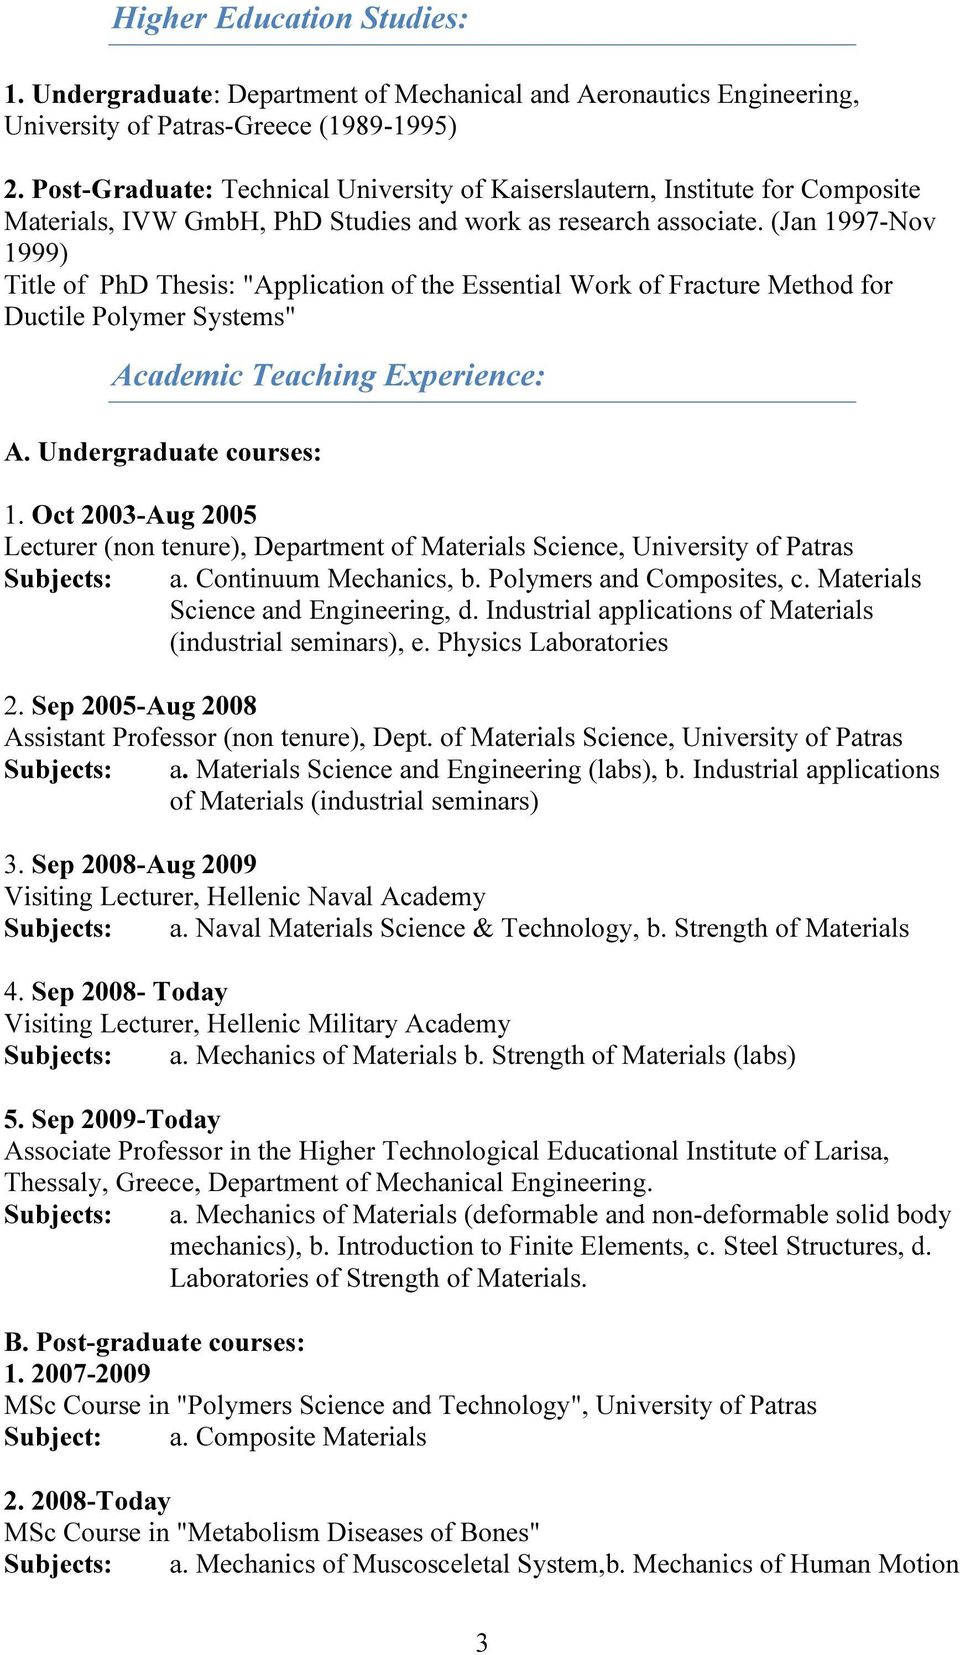 "(Jan 1997-Nov 1999) Title of PhD Thesis: ""Application of the Essential Work of Fracture Method for Ductile Polymer Systems"" Academic Teaching Experience: A. Undergraduate courses: 1."